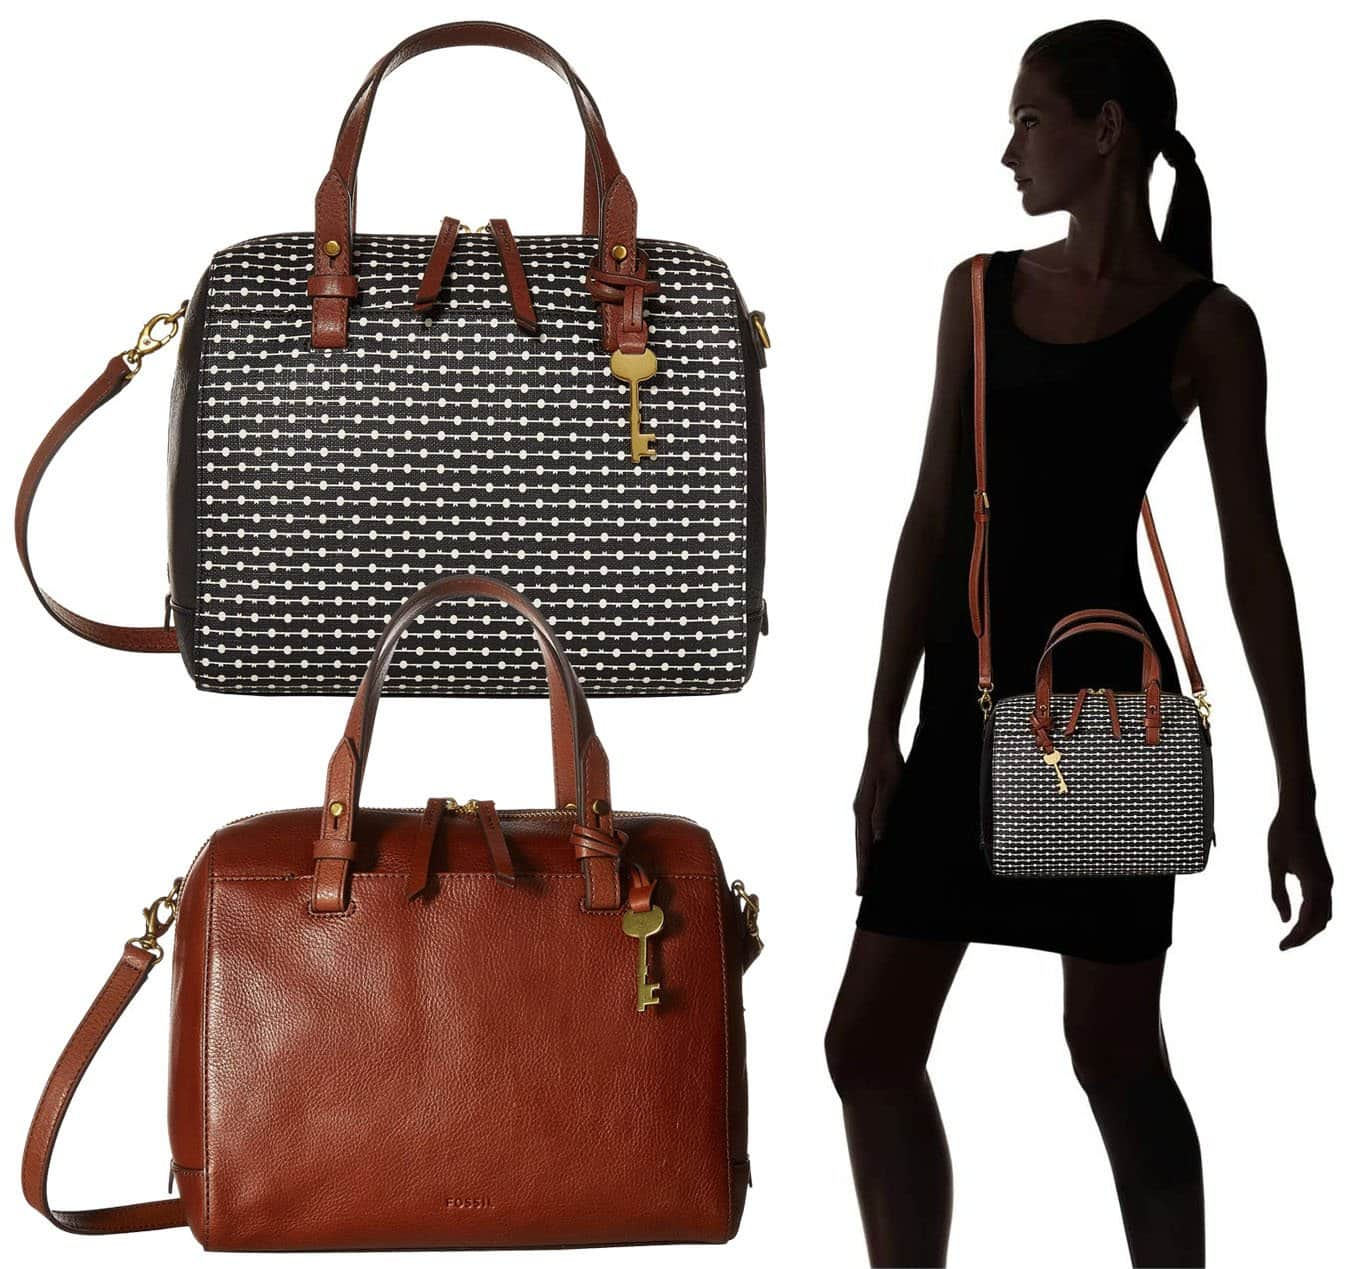 Sustainable and stylish, the Rachel satchel is made from eco leather and features a classy structured silhouette